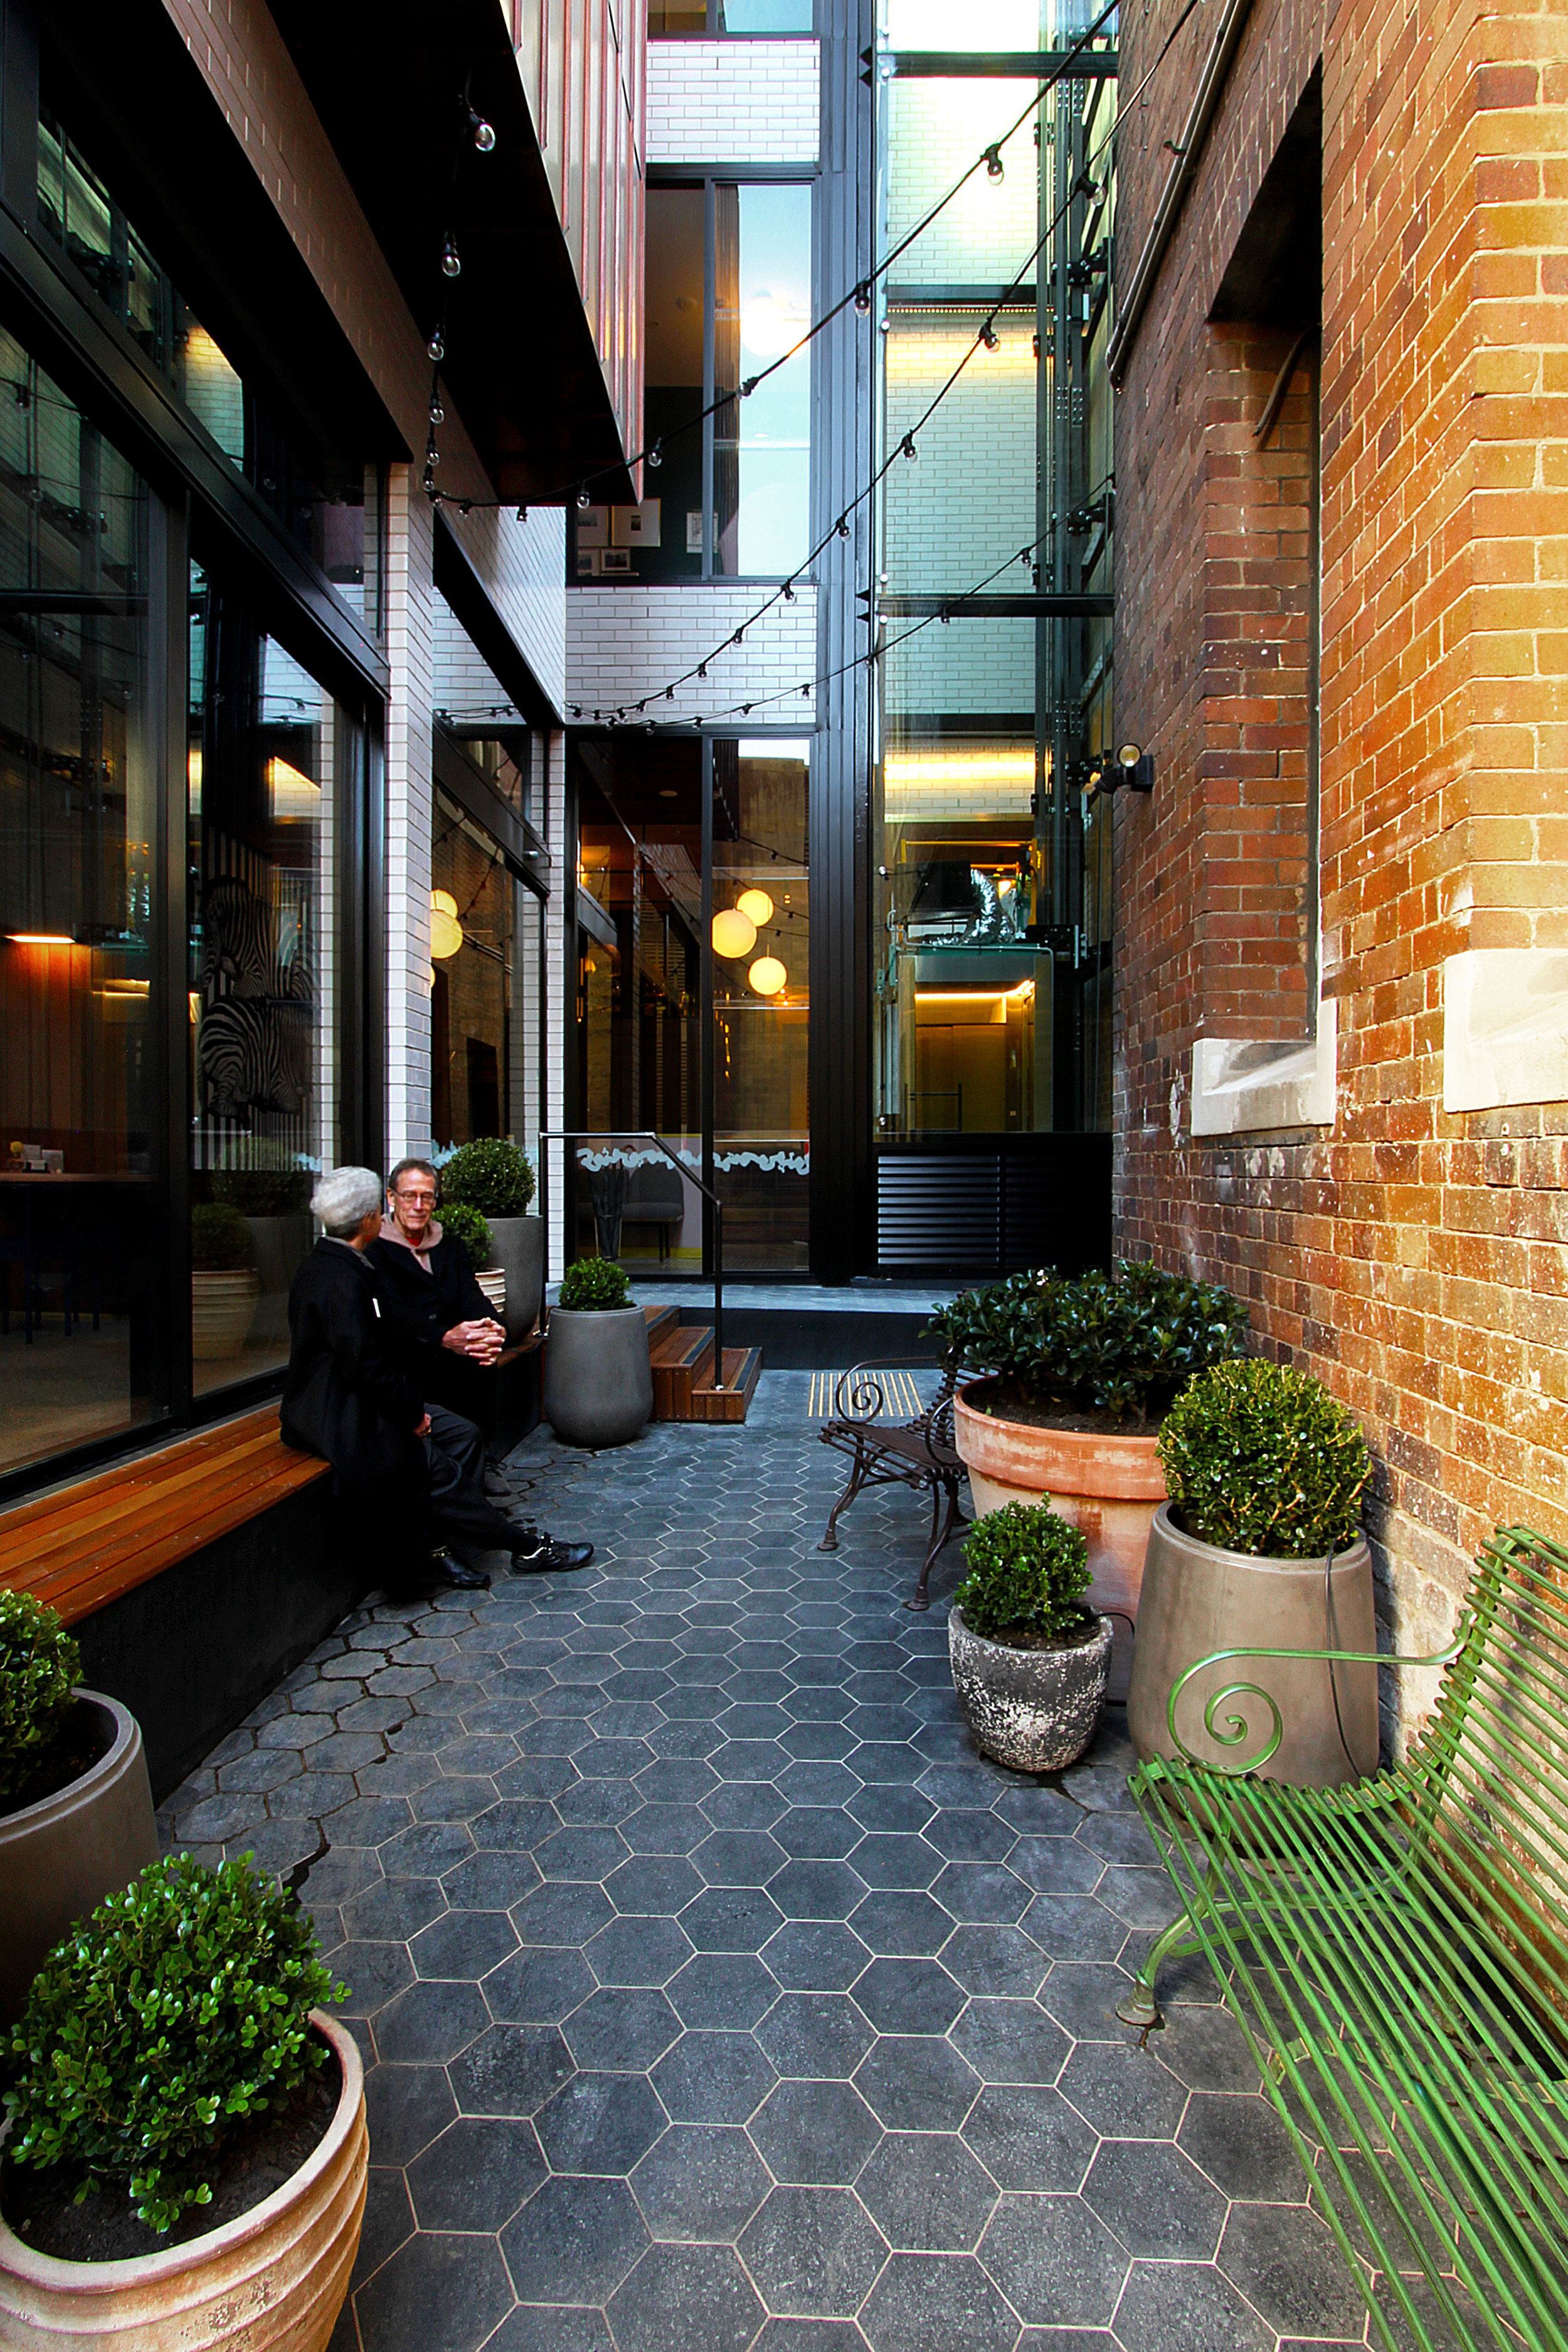 TYA Photography | Little Albion Guest House | Entrance Courtyard | Winter | Sunset 01 | A9204.jpg